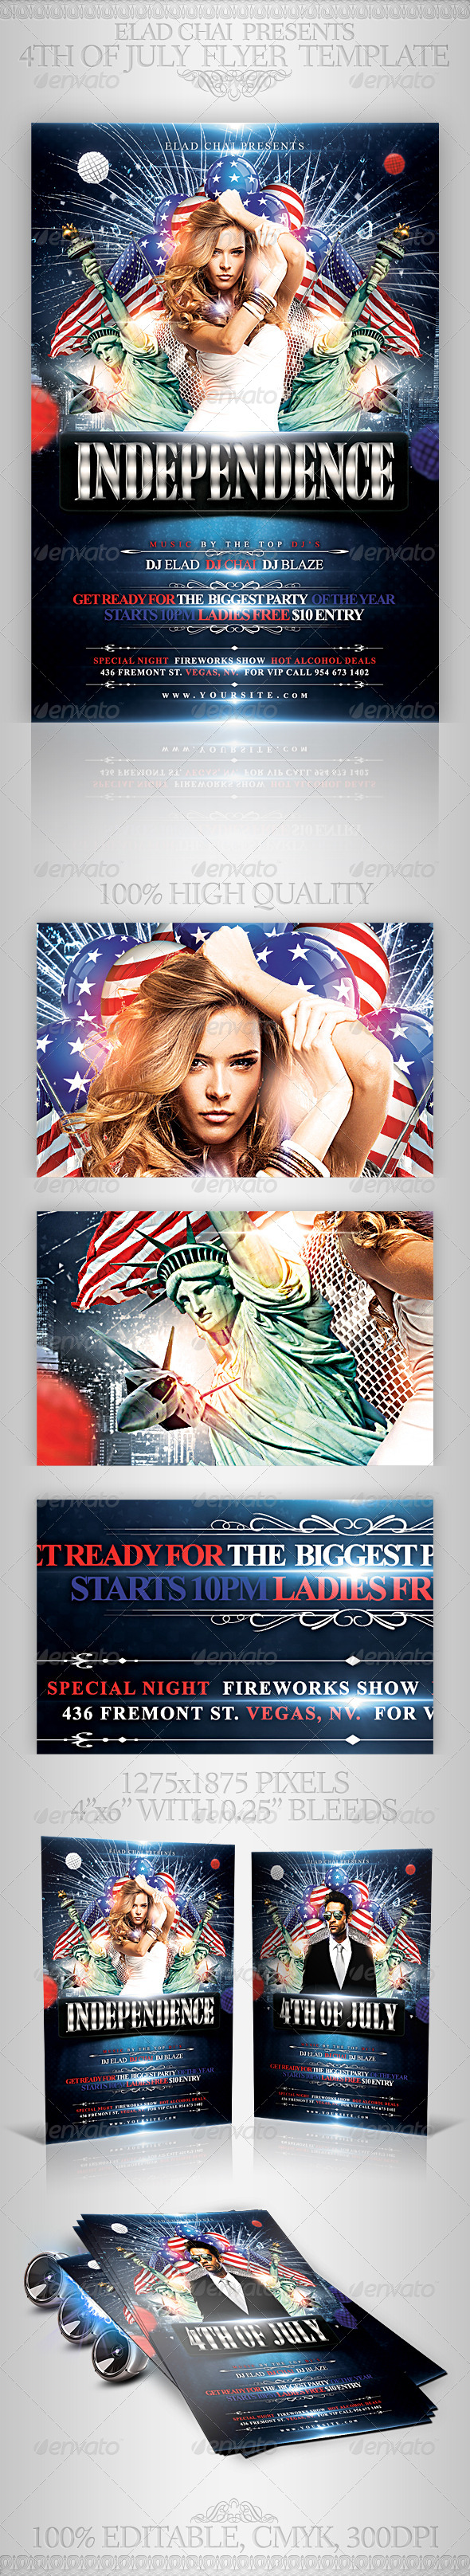 4th of July Independence Day Flyer Template - Holidays Events